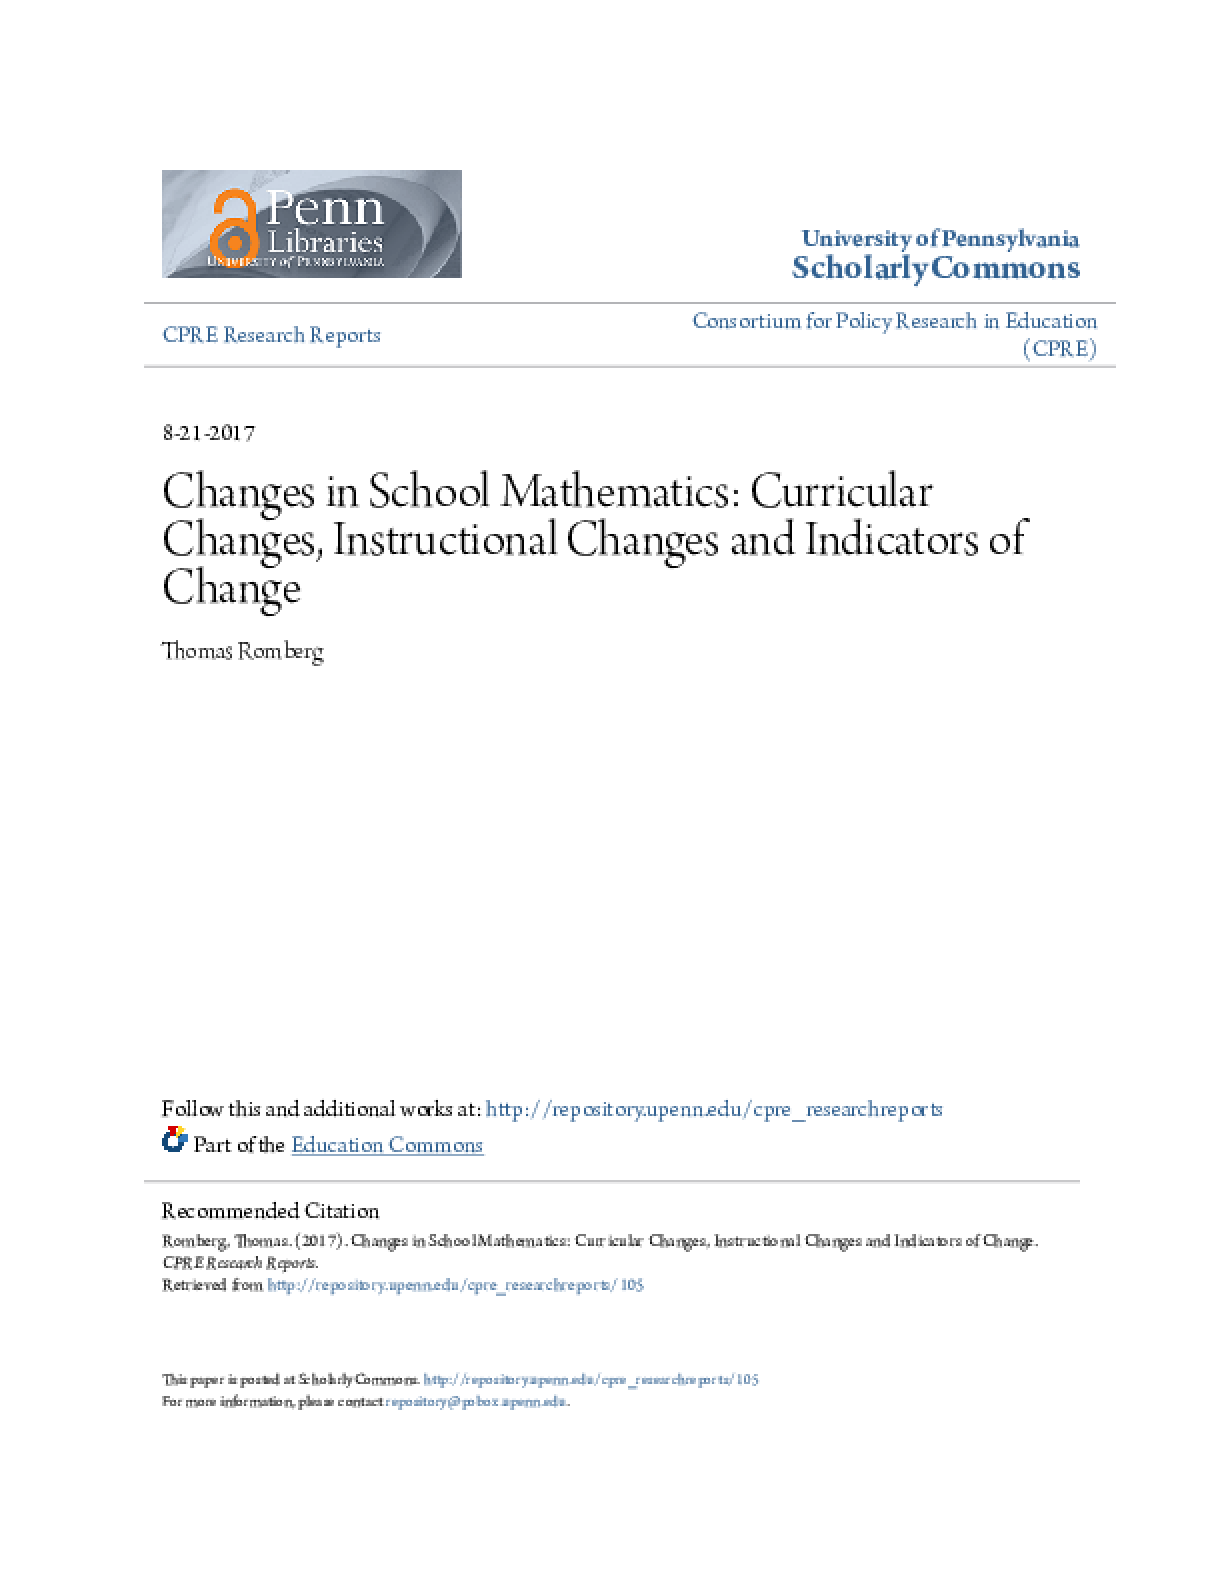 Changes in School Mathematics: Curricular Changes, Instructional Changes and Indicators of Change